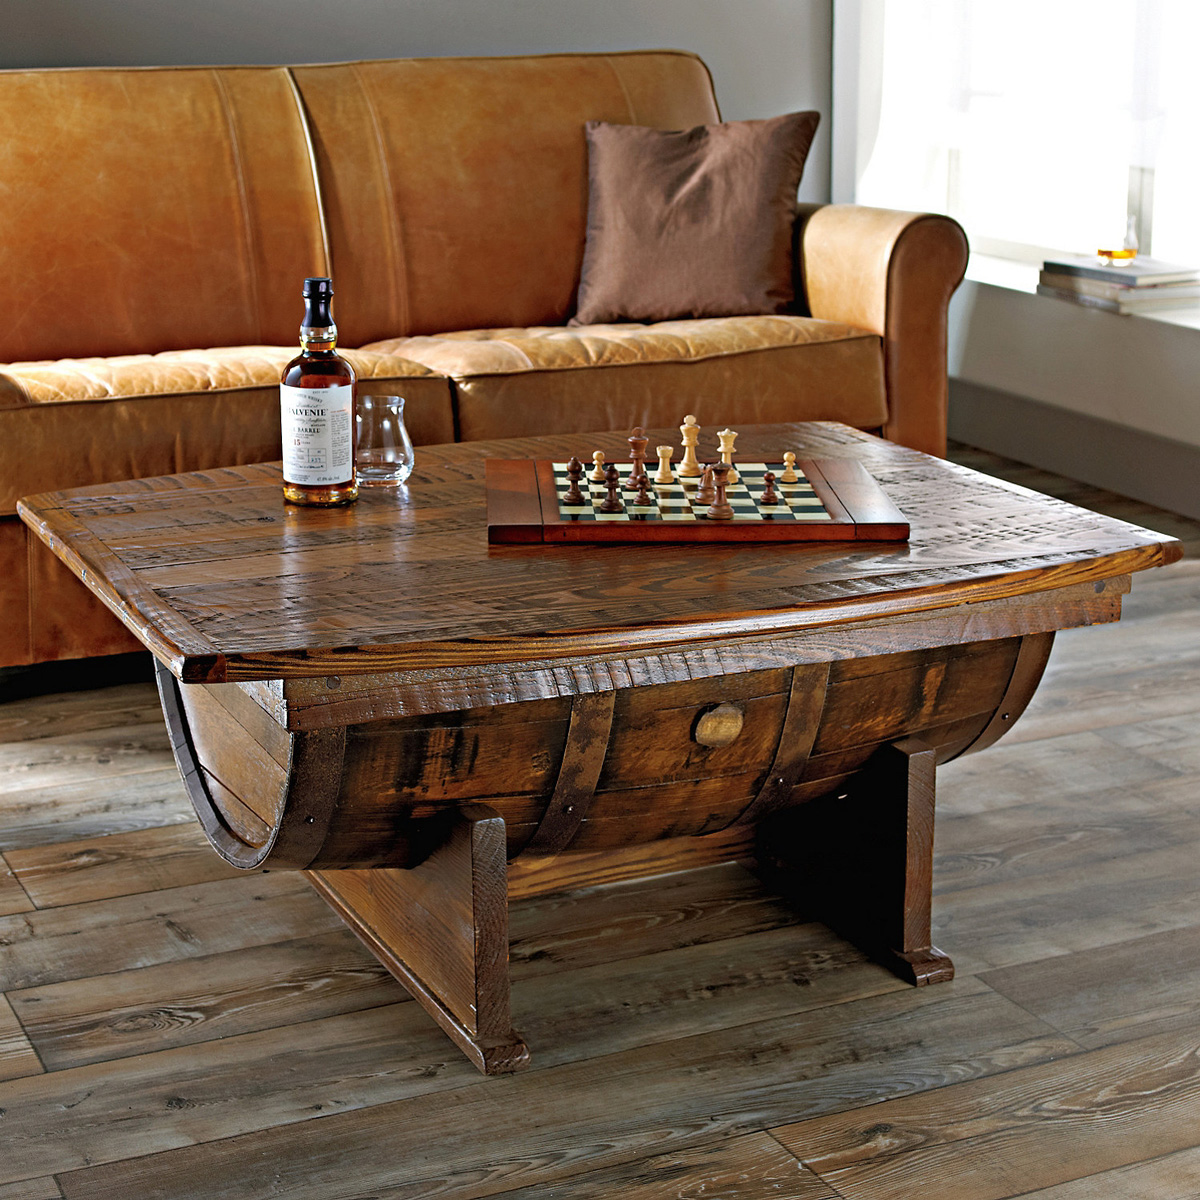 Handmade vintage oak whiskey barrel coffee table the Table making ideas